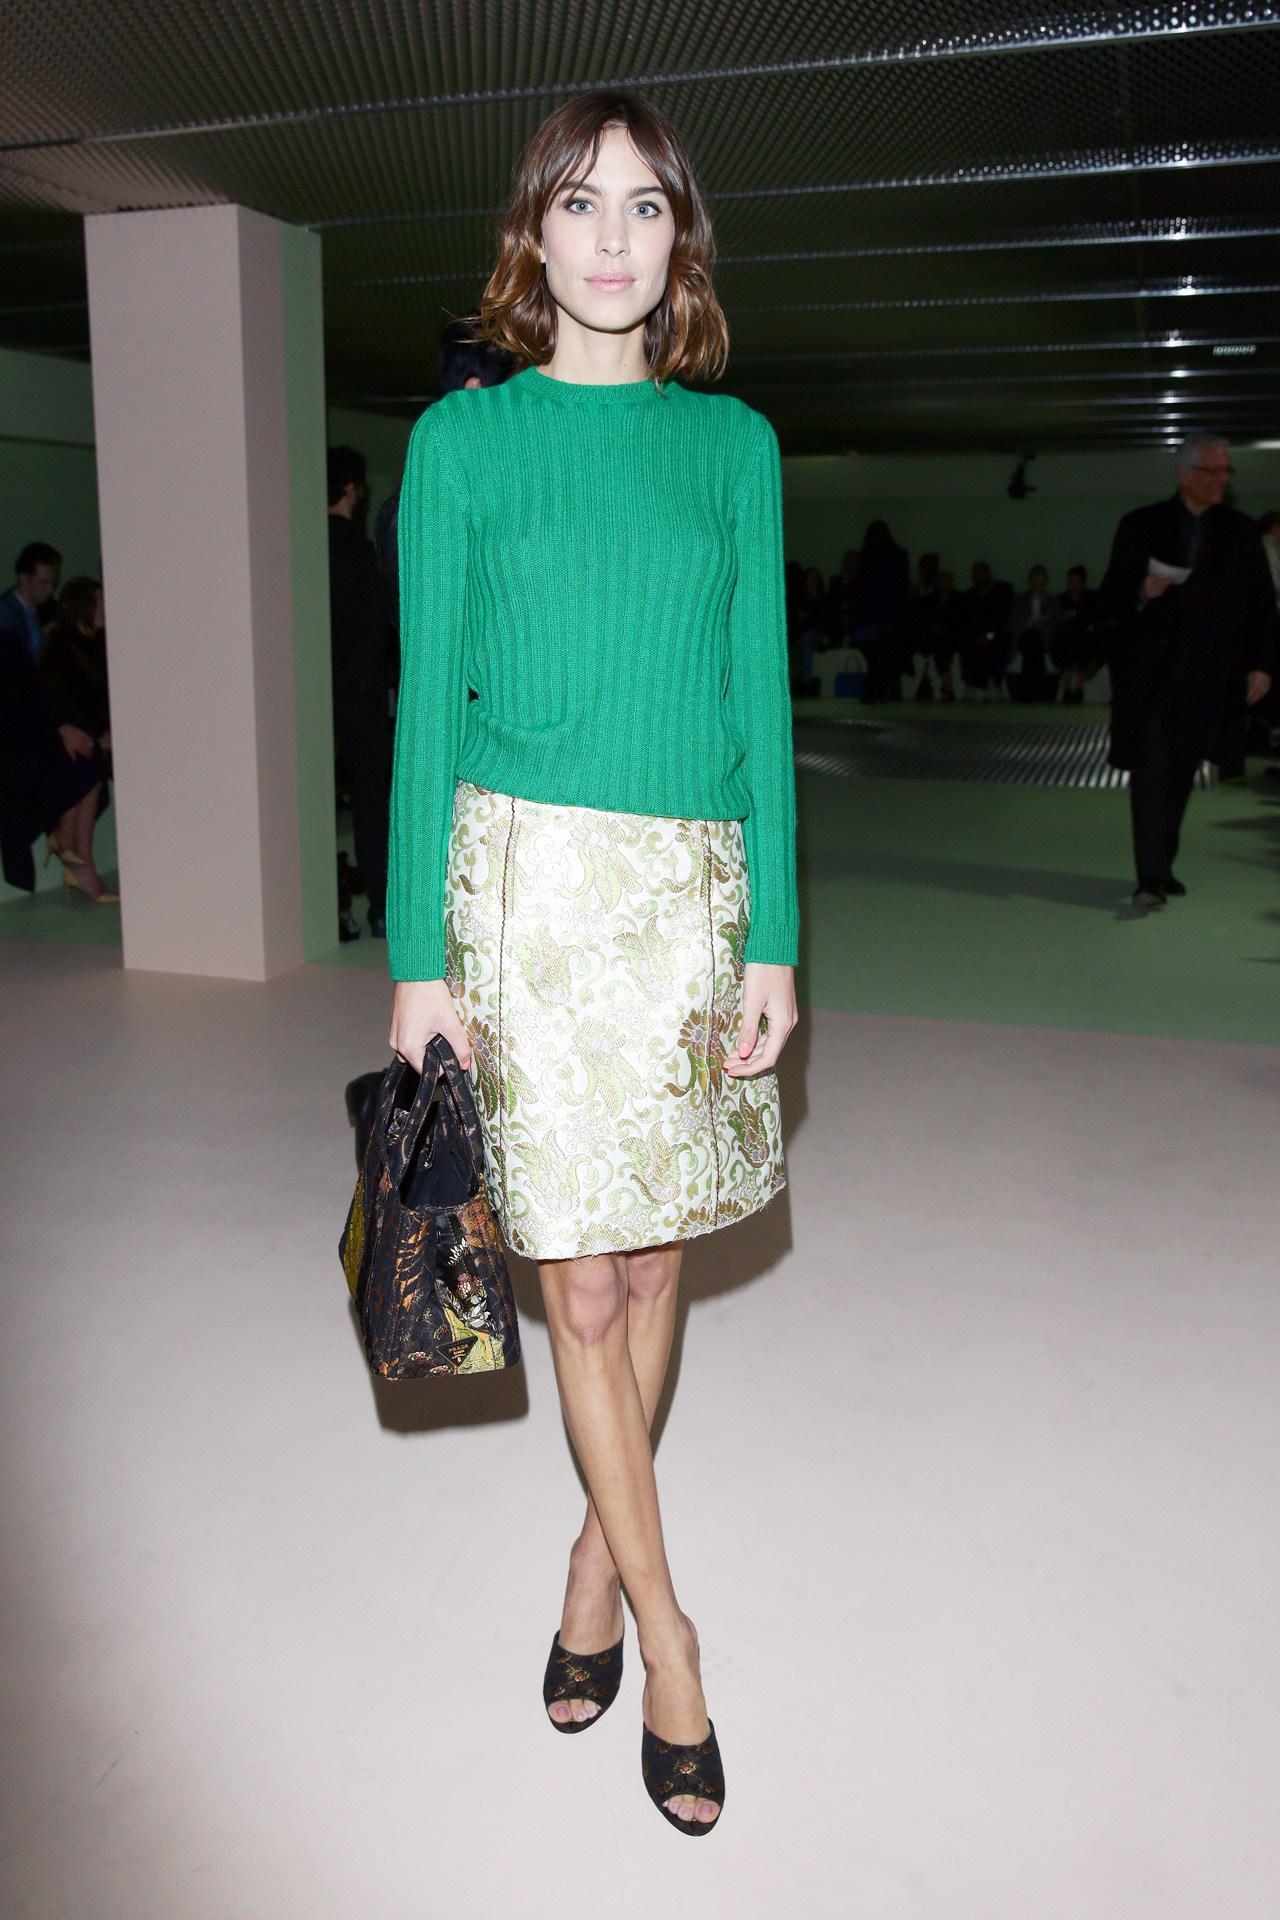 WATCH: how to survive fashion week, by @alexa_chung - http://t.co/s9g0AsHVmD http://t.co/sFnANRKsRW